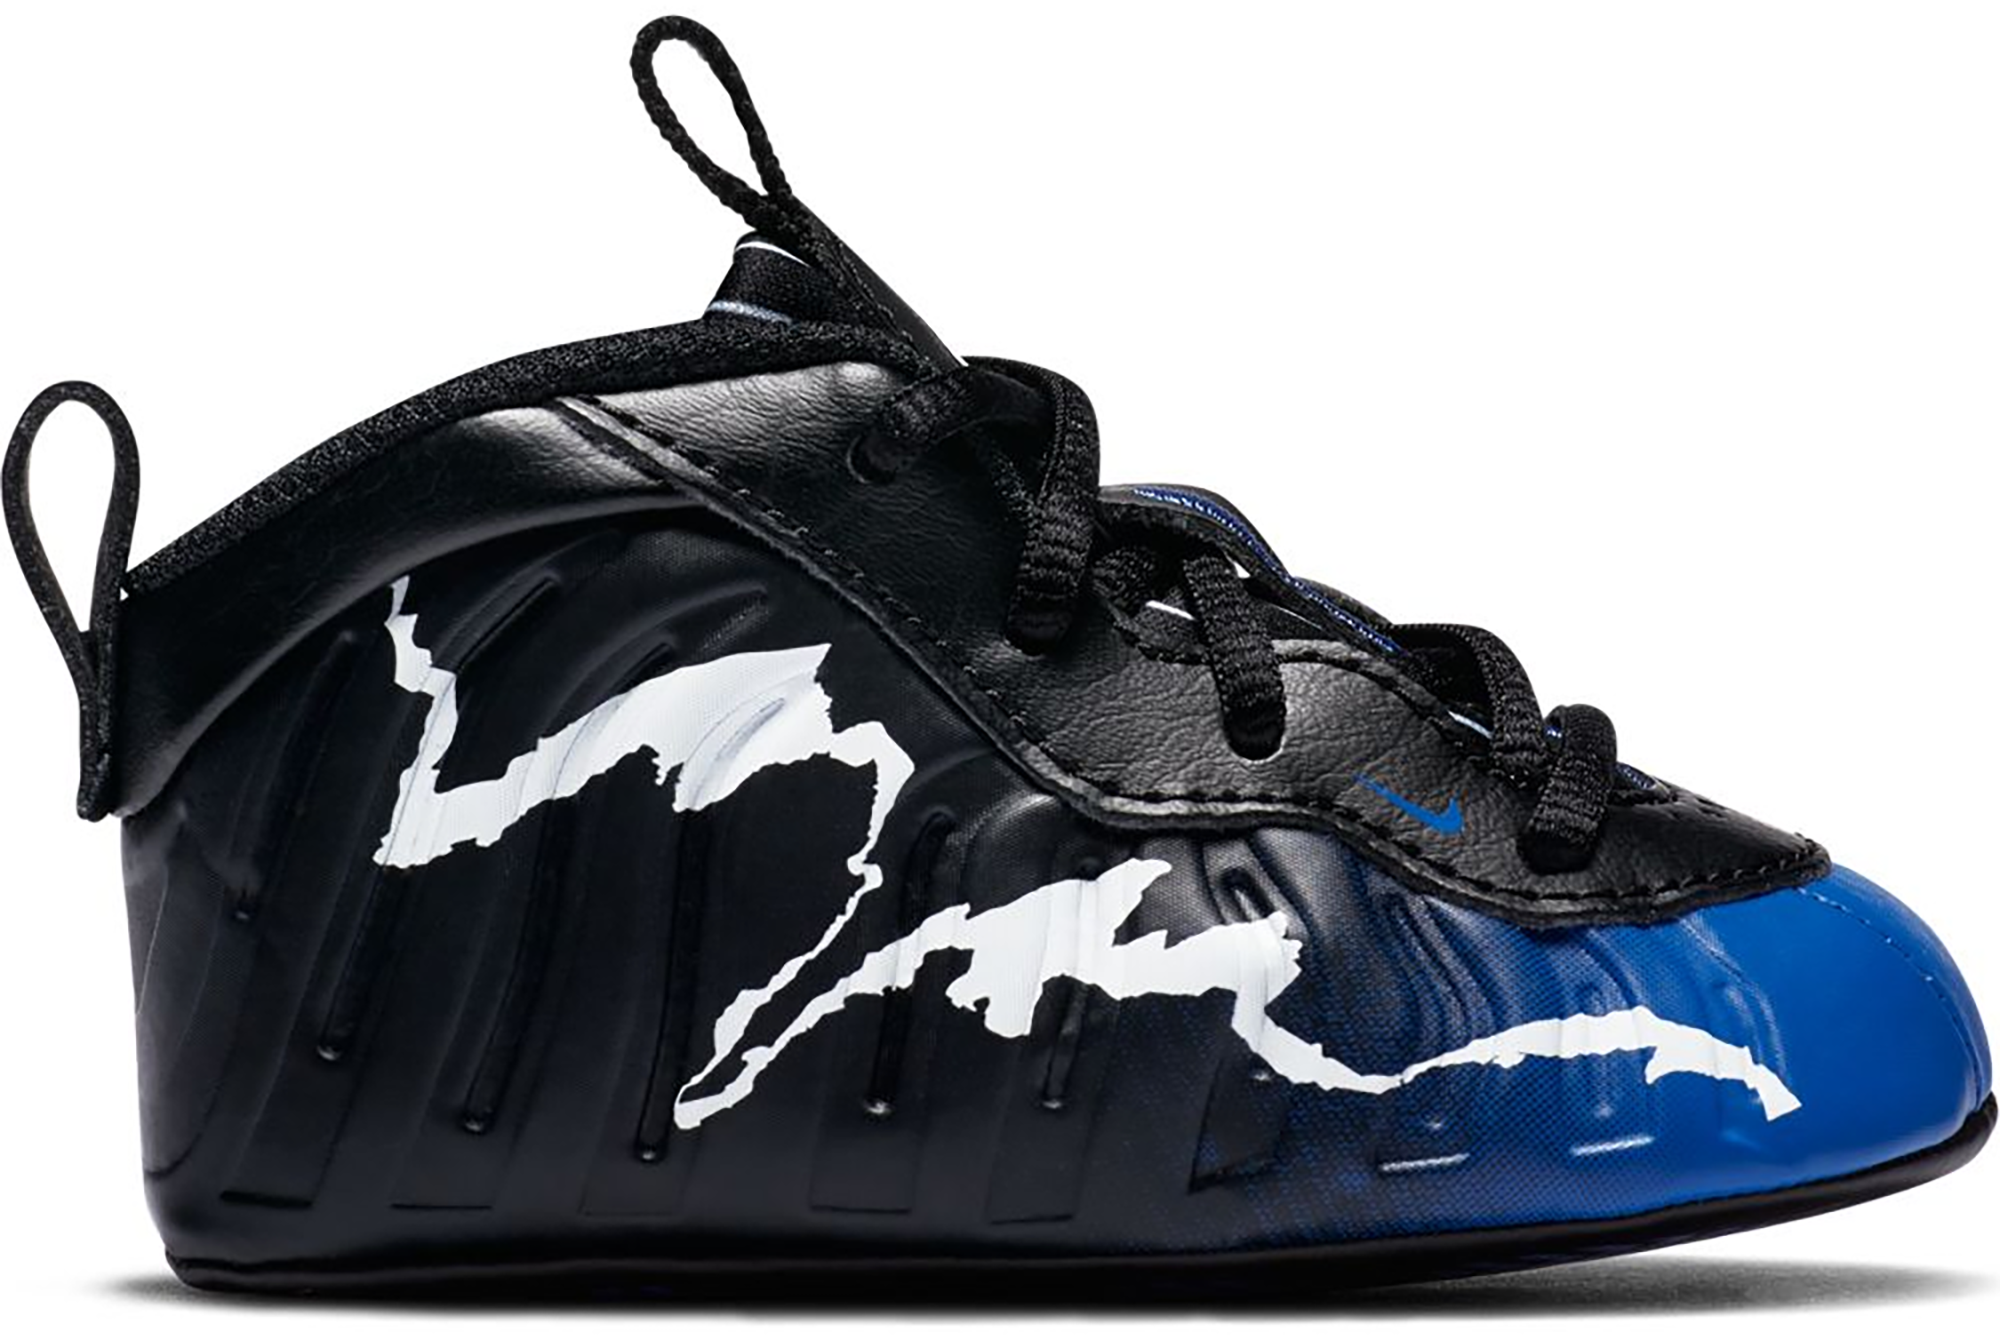 Nike Air Foamposite One Blue Mirror Releases On New ...